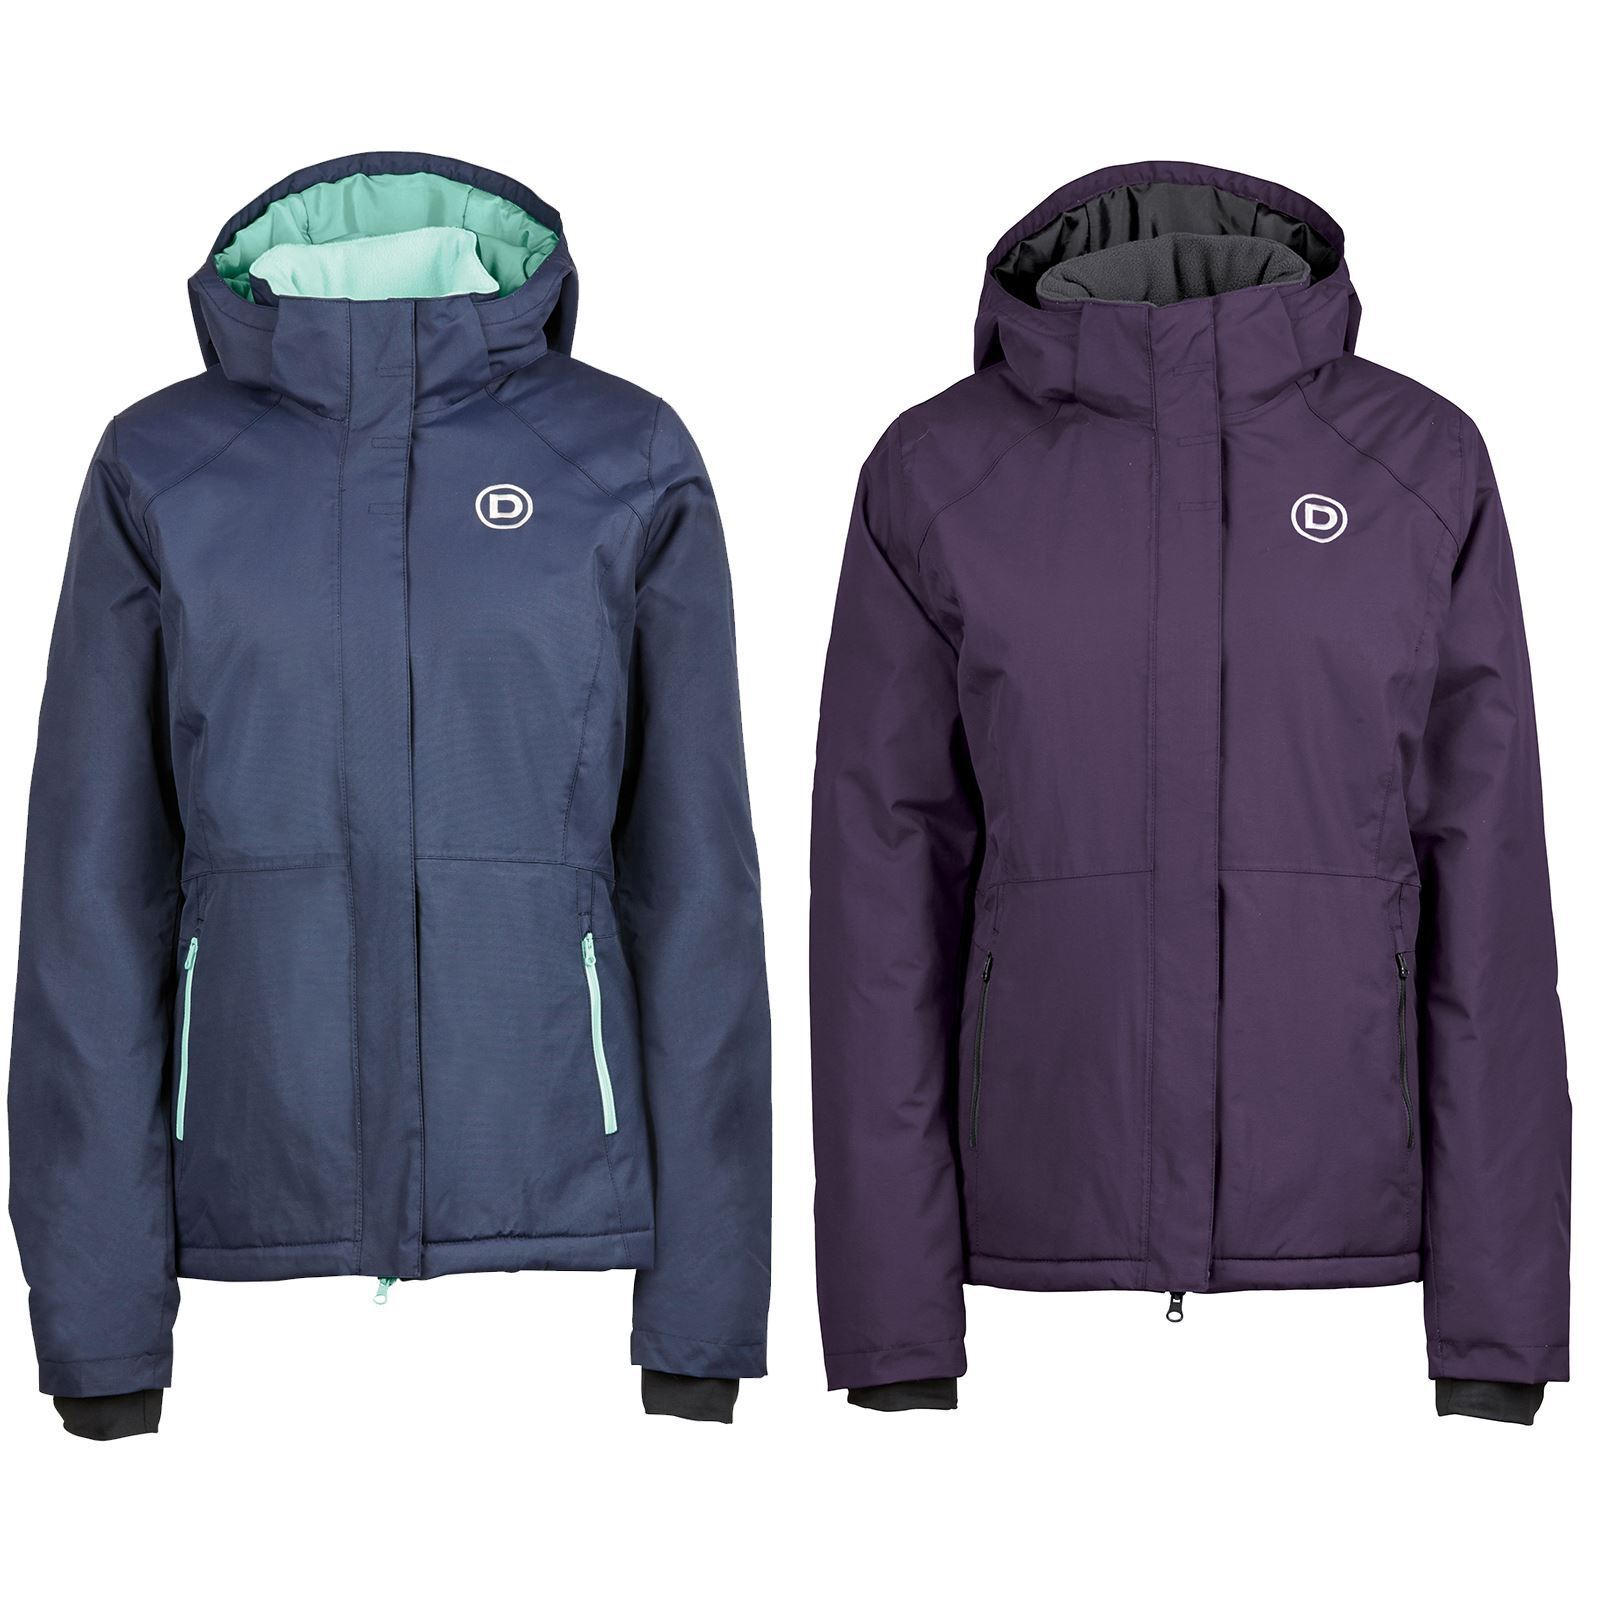 Dublin ANNABELLE Donna Giacca Outdoor Impermeabile Invernale Paese Equitazione